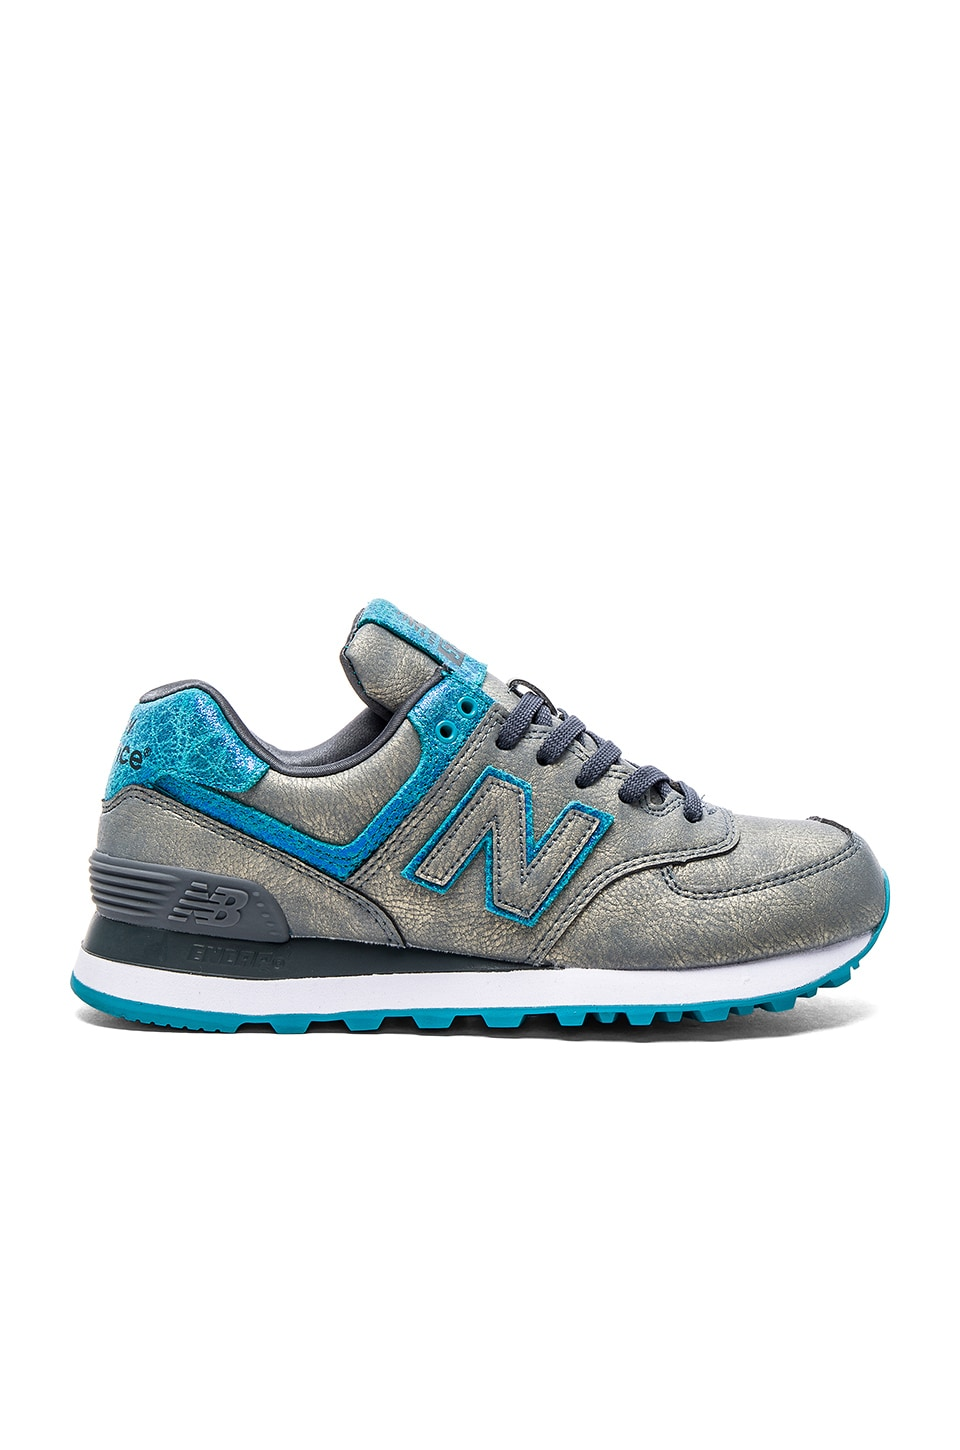 New Balance 574 Mineral Glow Collection Sneaker in Grey & Blue